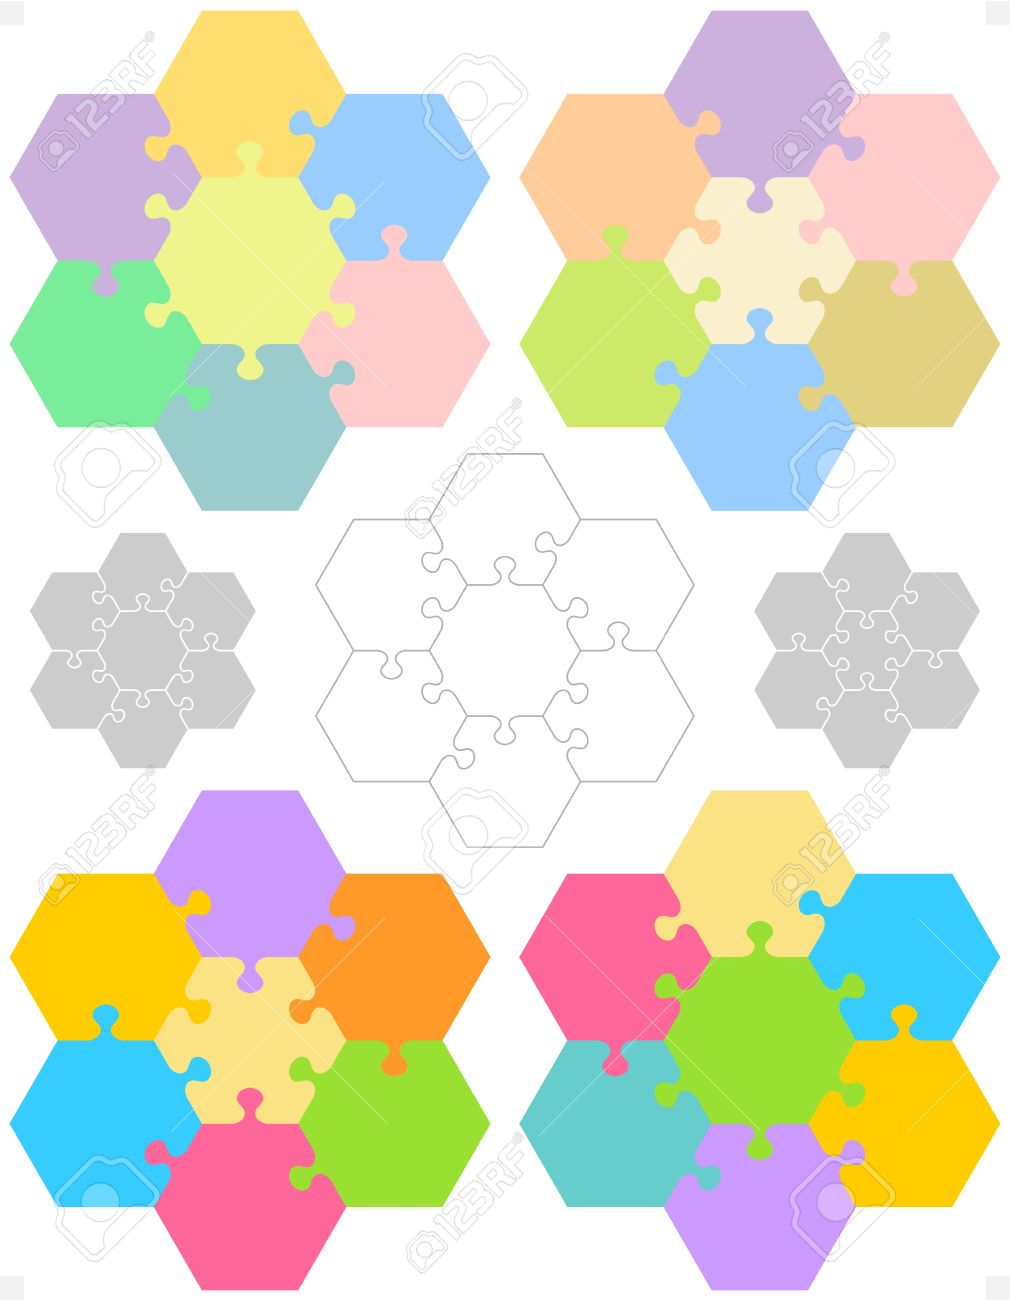 Hexagonal Jigsaw Puzzle Blank Templates Or Cutting Guidelines ...